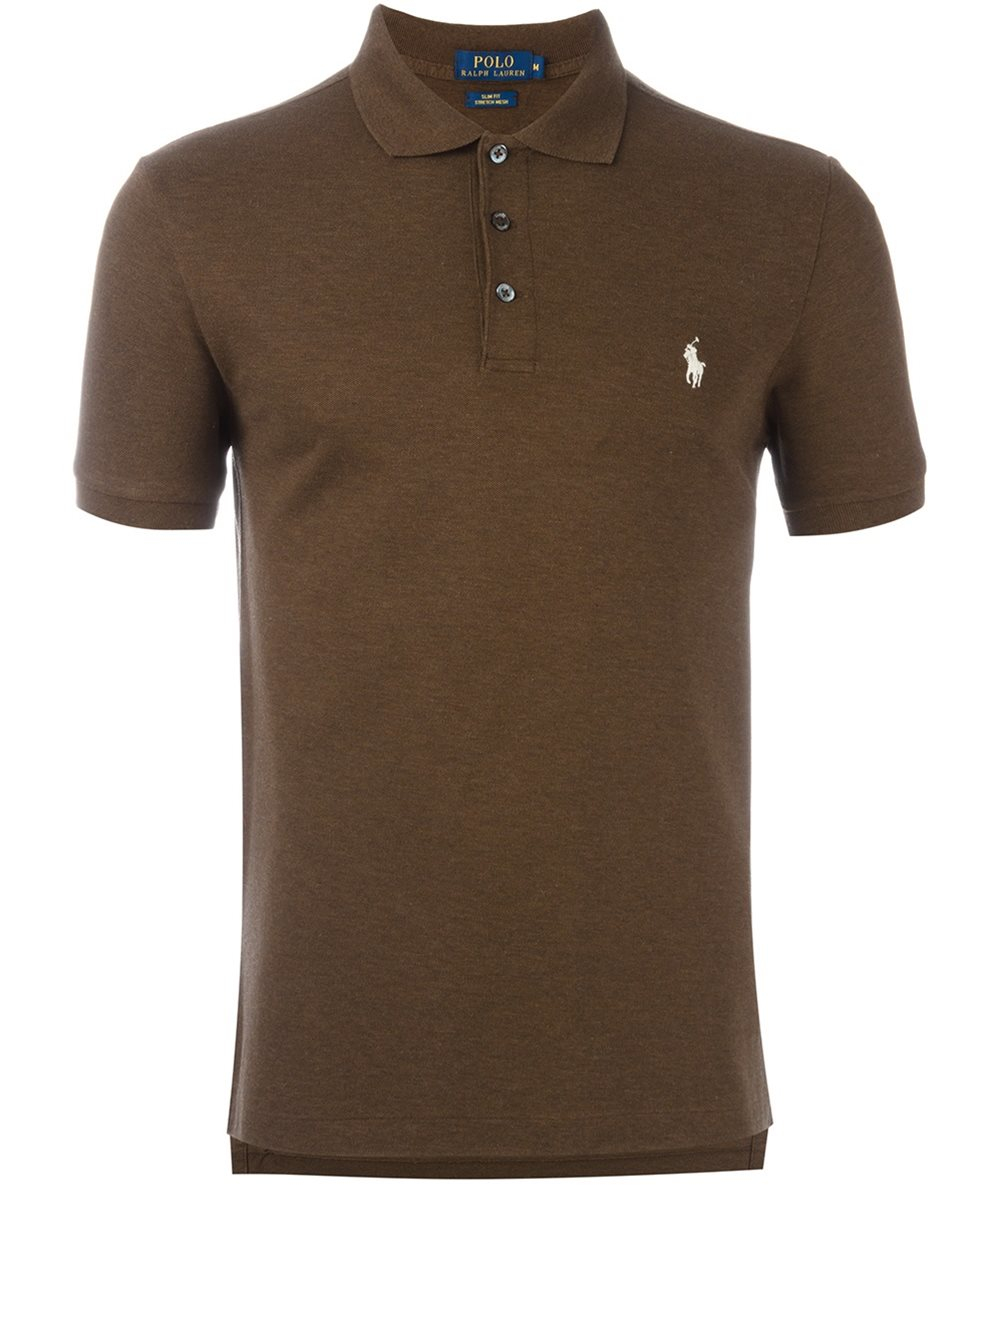 Polo ralph lauren logo embroidered polo shirt in brown for for Polo shirts with logos